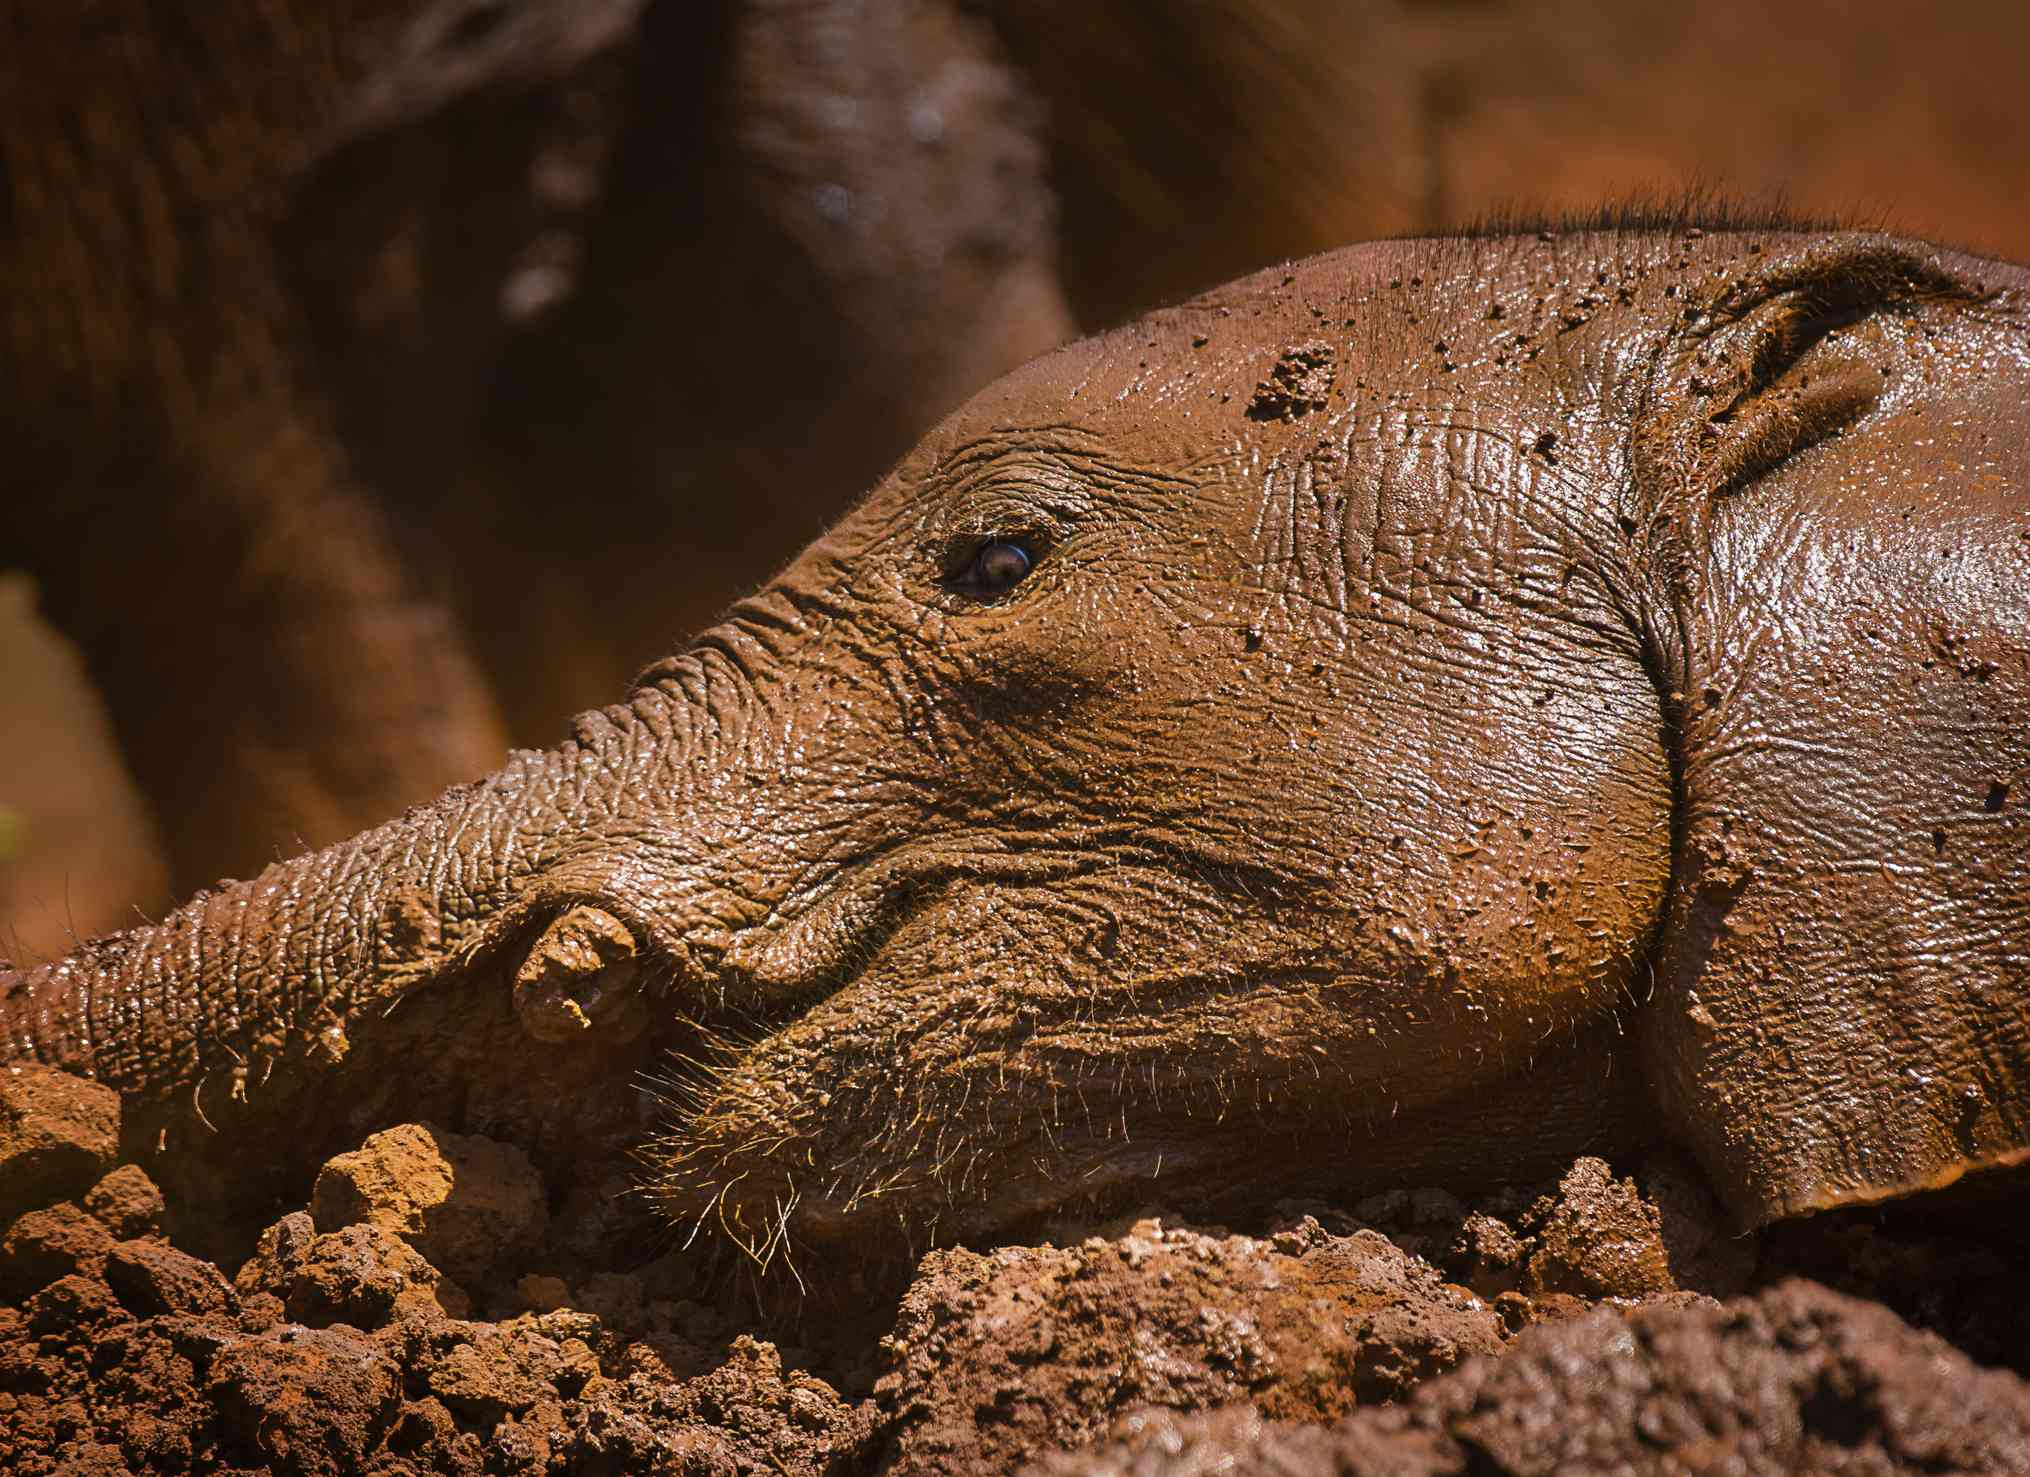 A Young Elephant Calf Enjoys a Lie in the mud in close up at Nairobi National Park, Kenya.